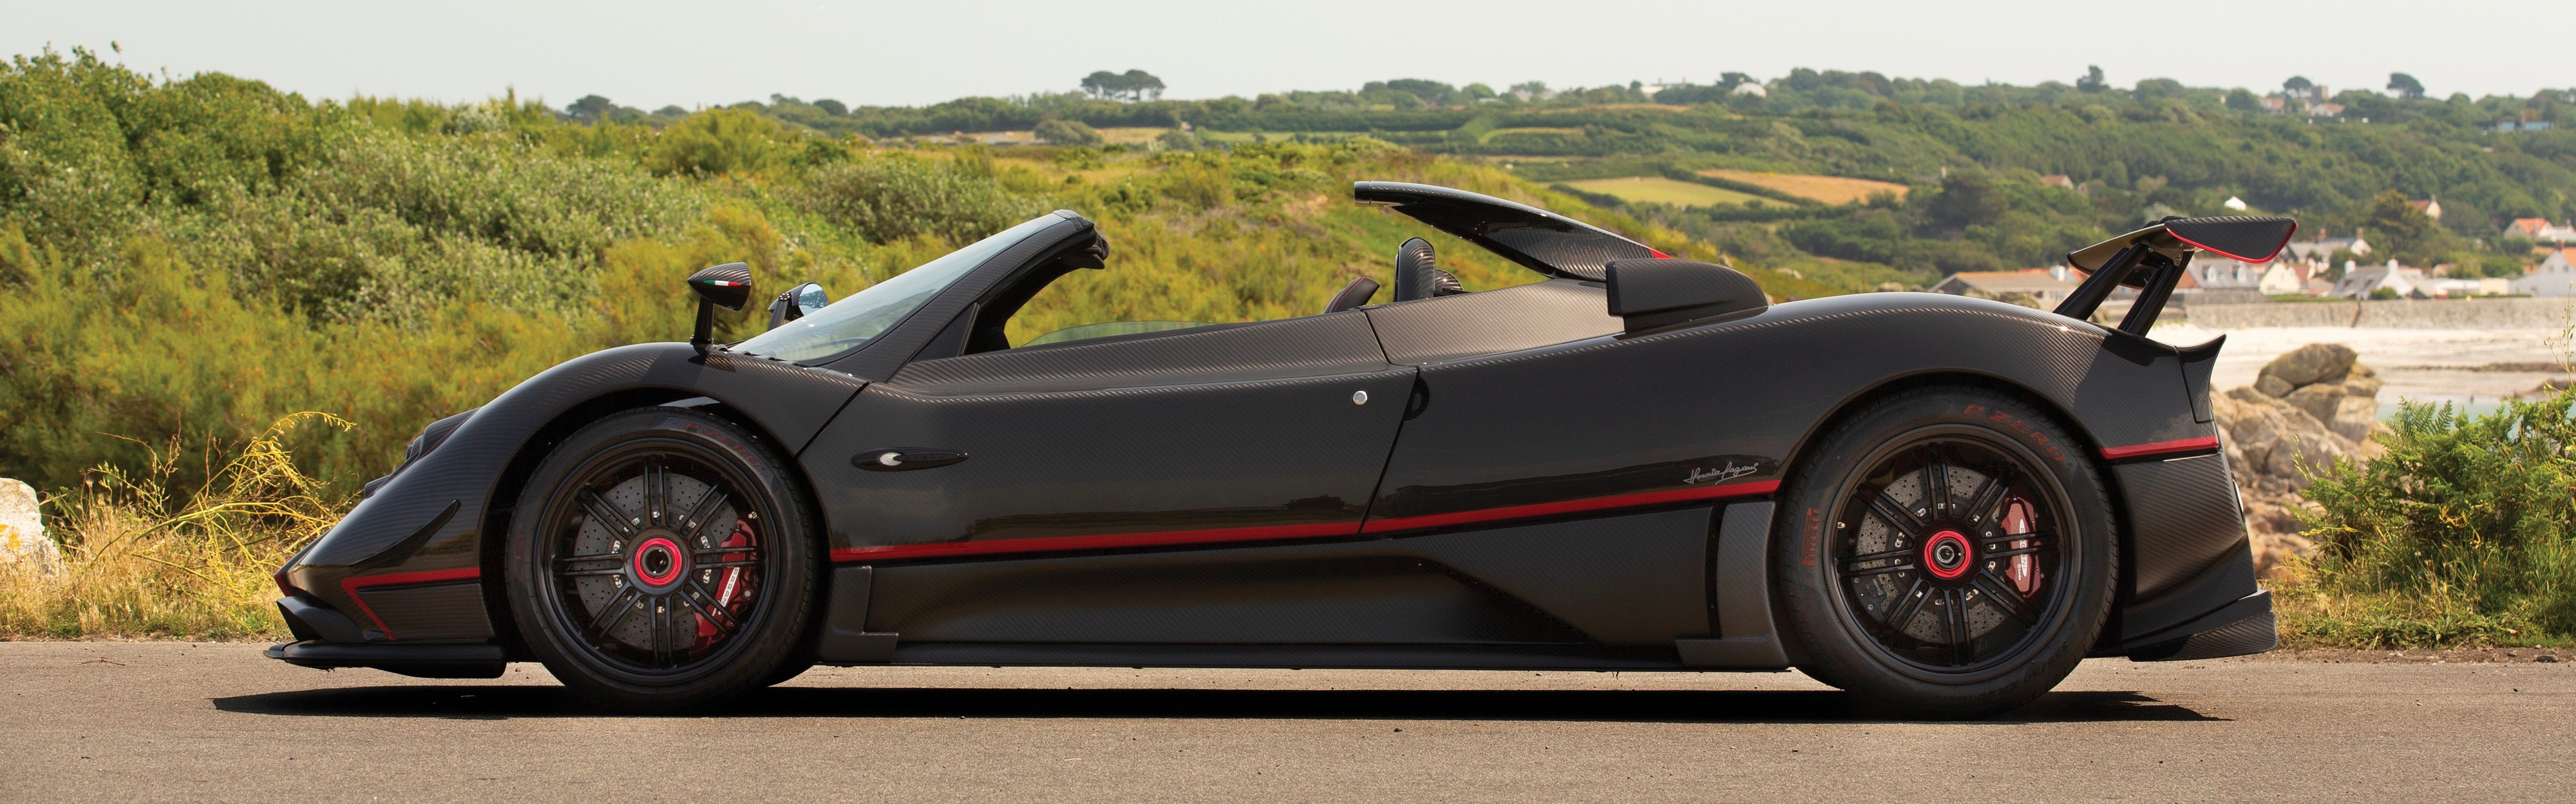 Pagani, RM Sotheby's lands one-off Pagani for Abu Dhabi auction, ClassicCars.com Journal